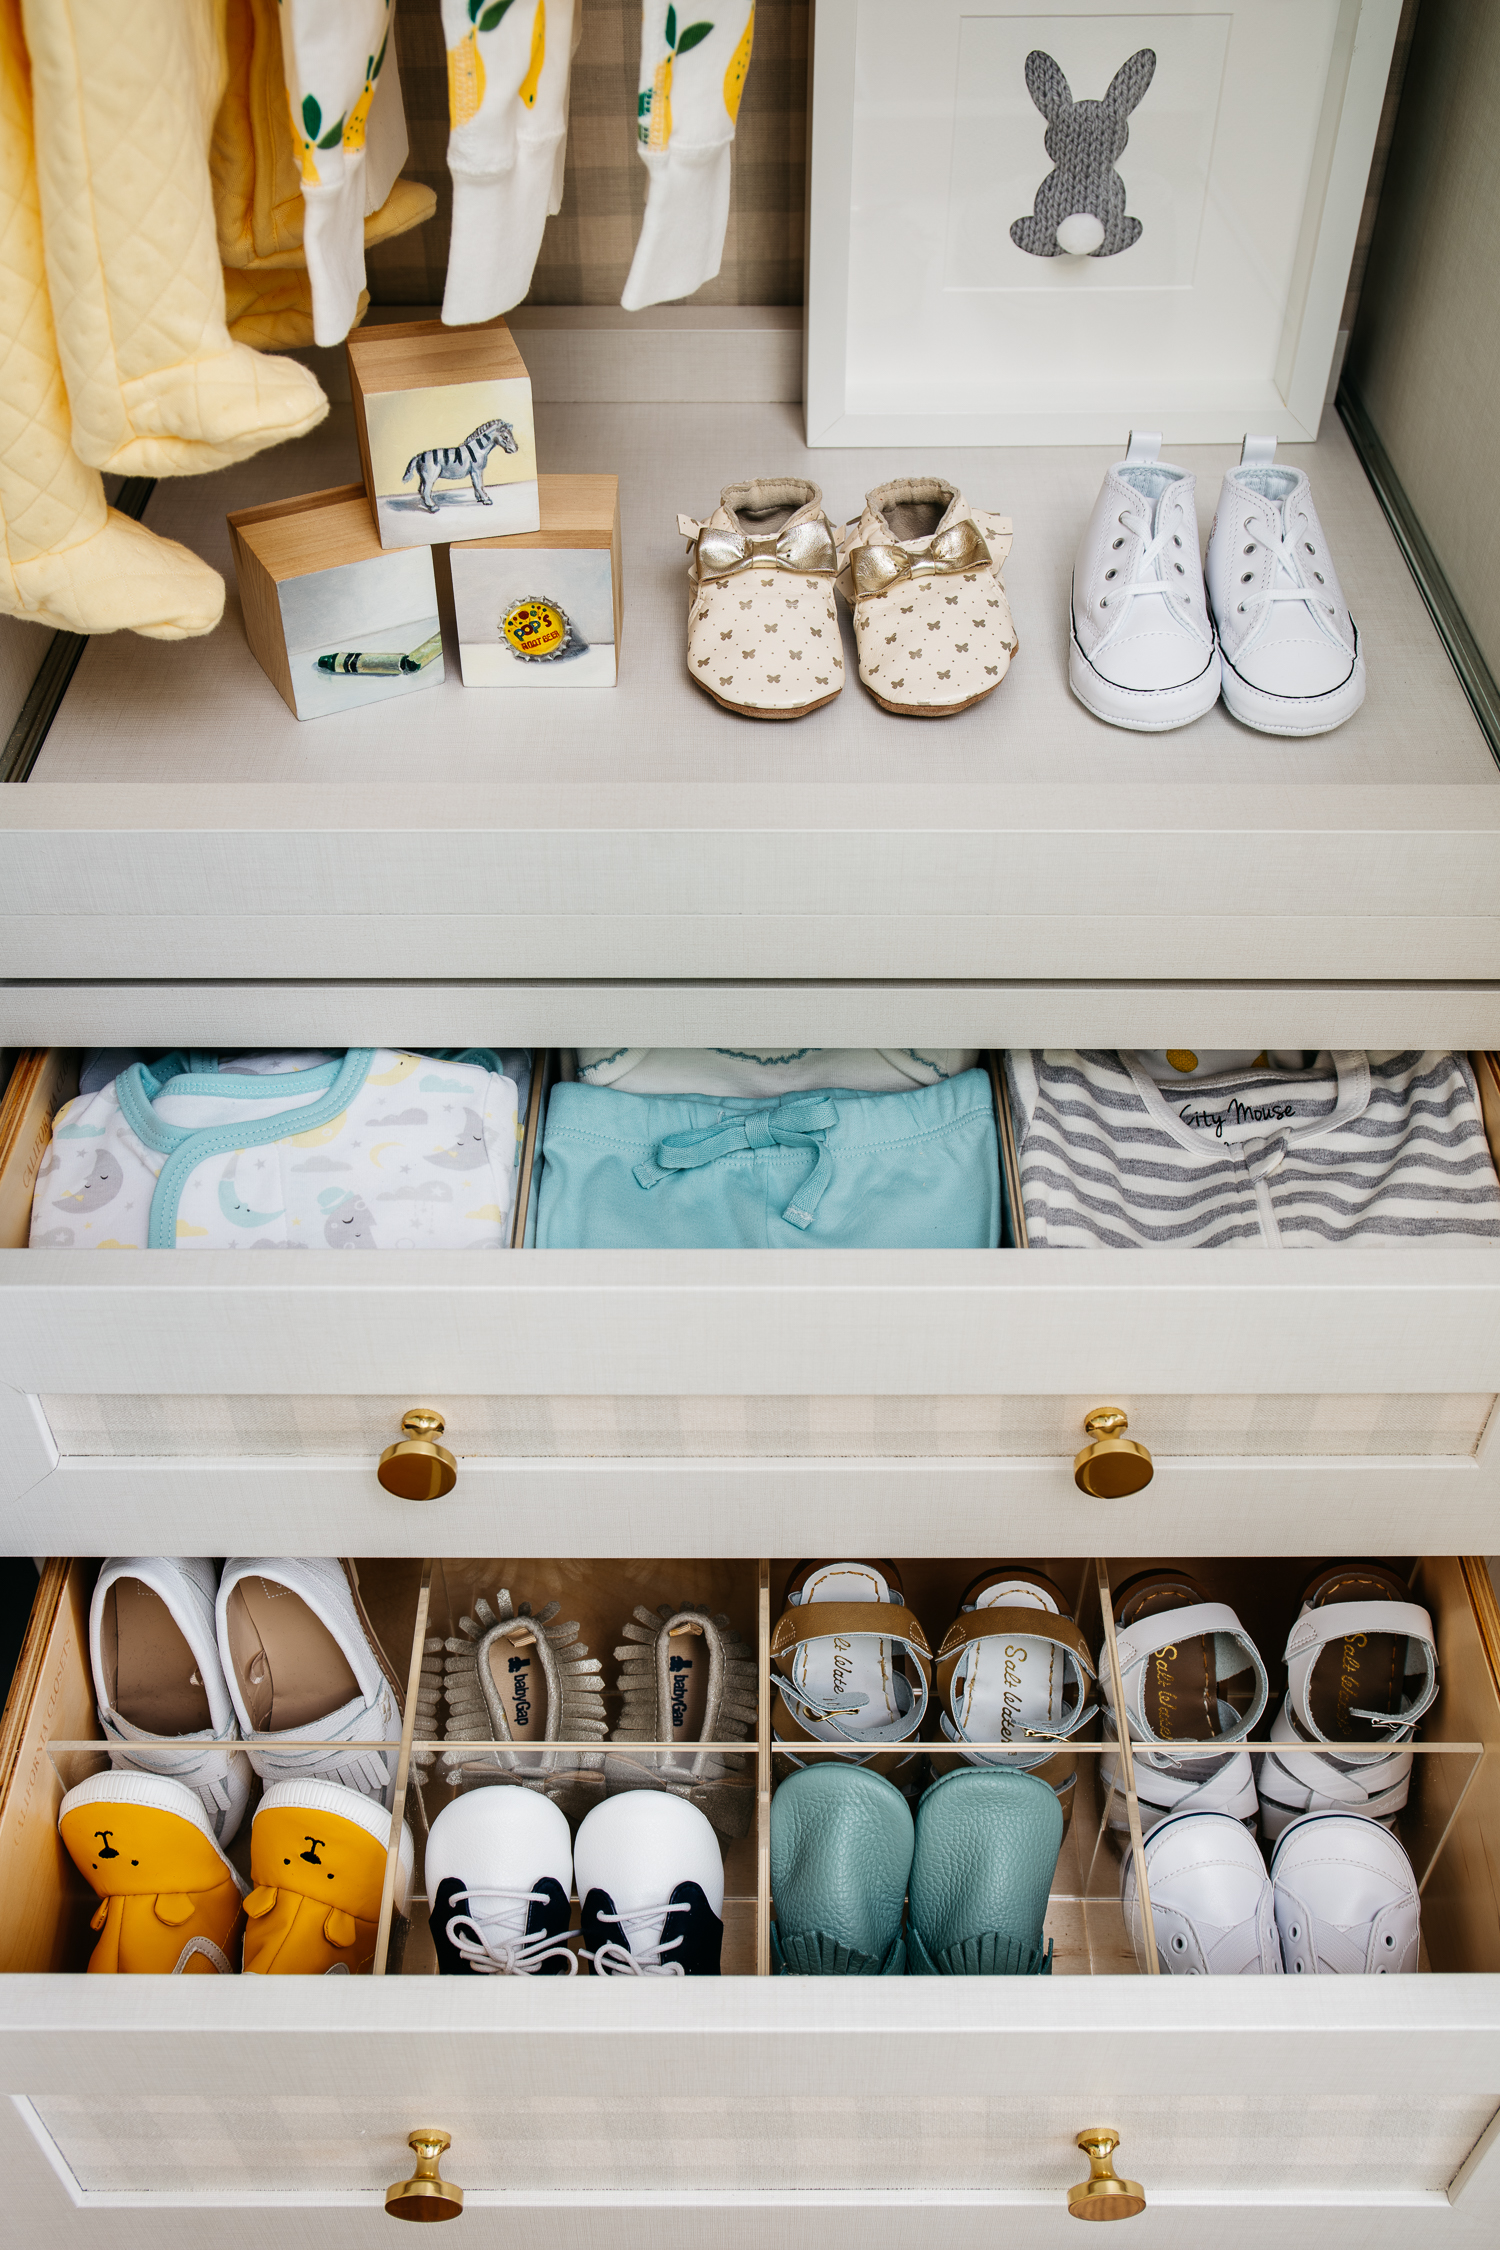 Organized Baby Shoes in Drawers